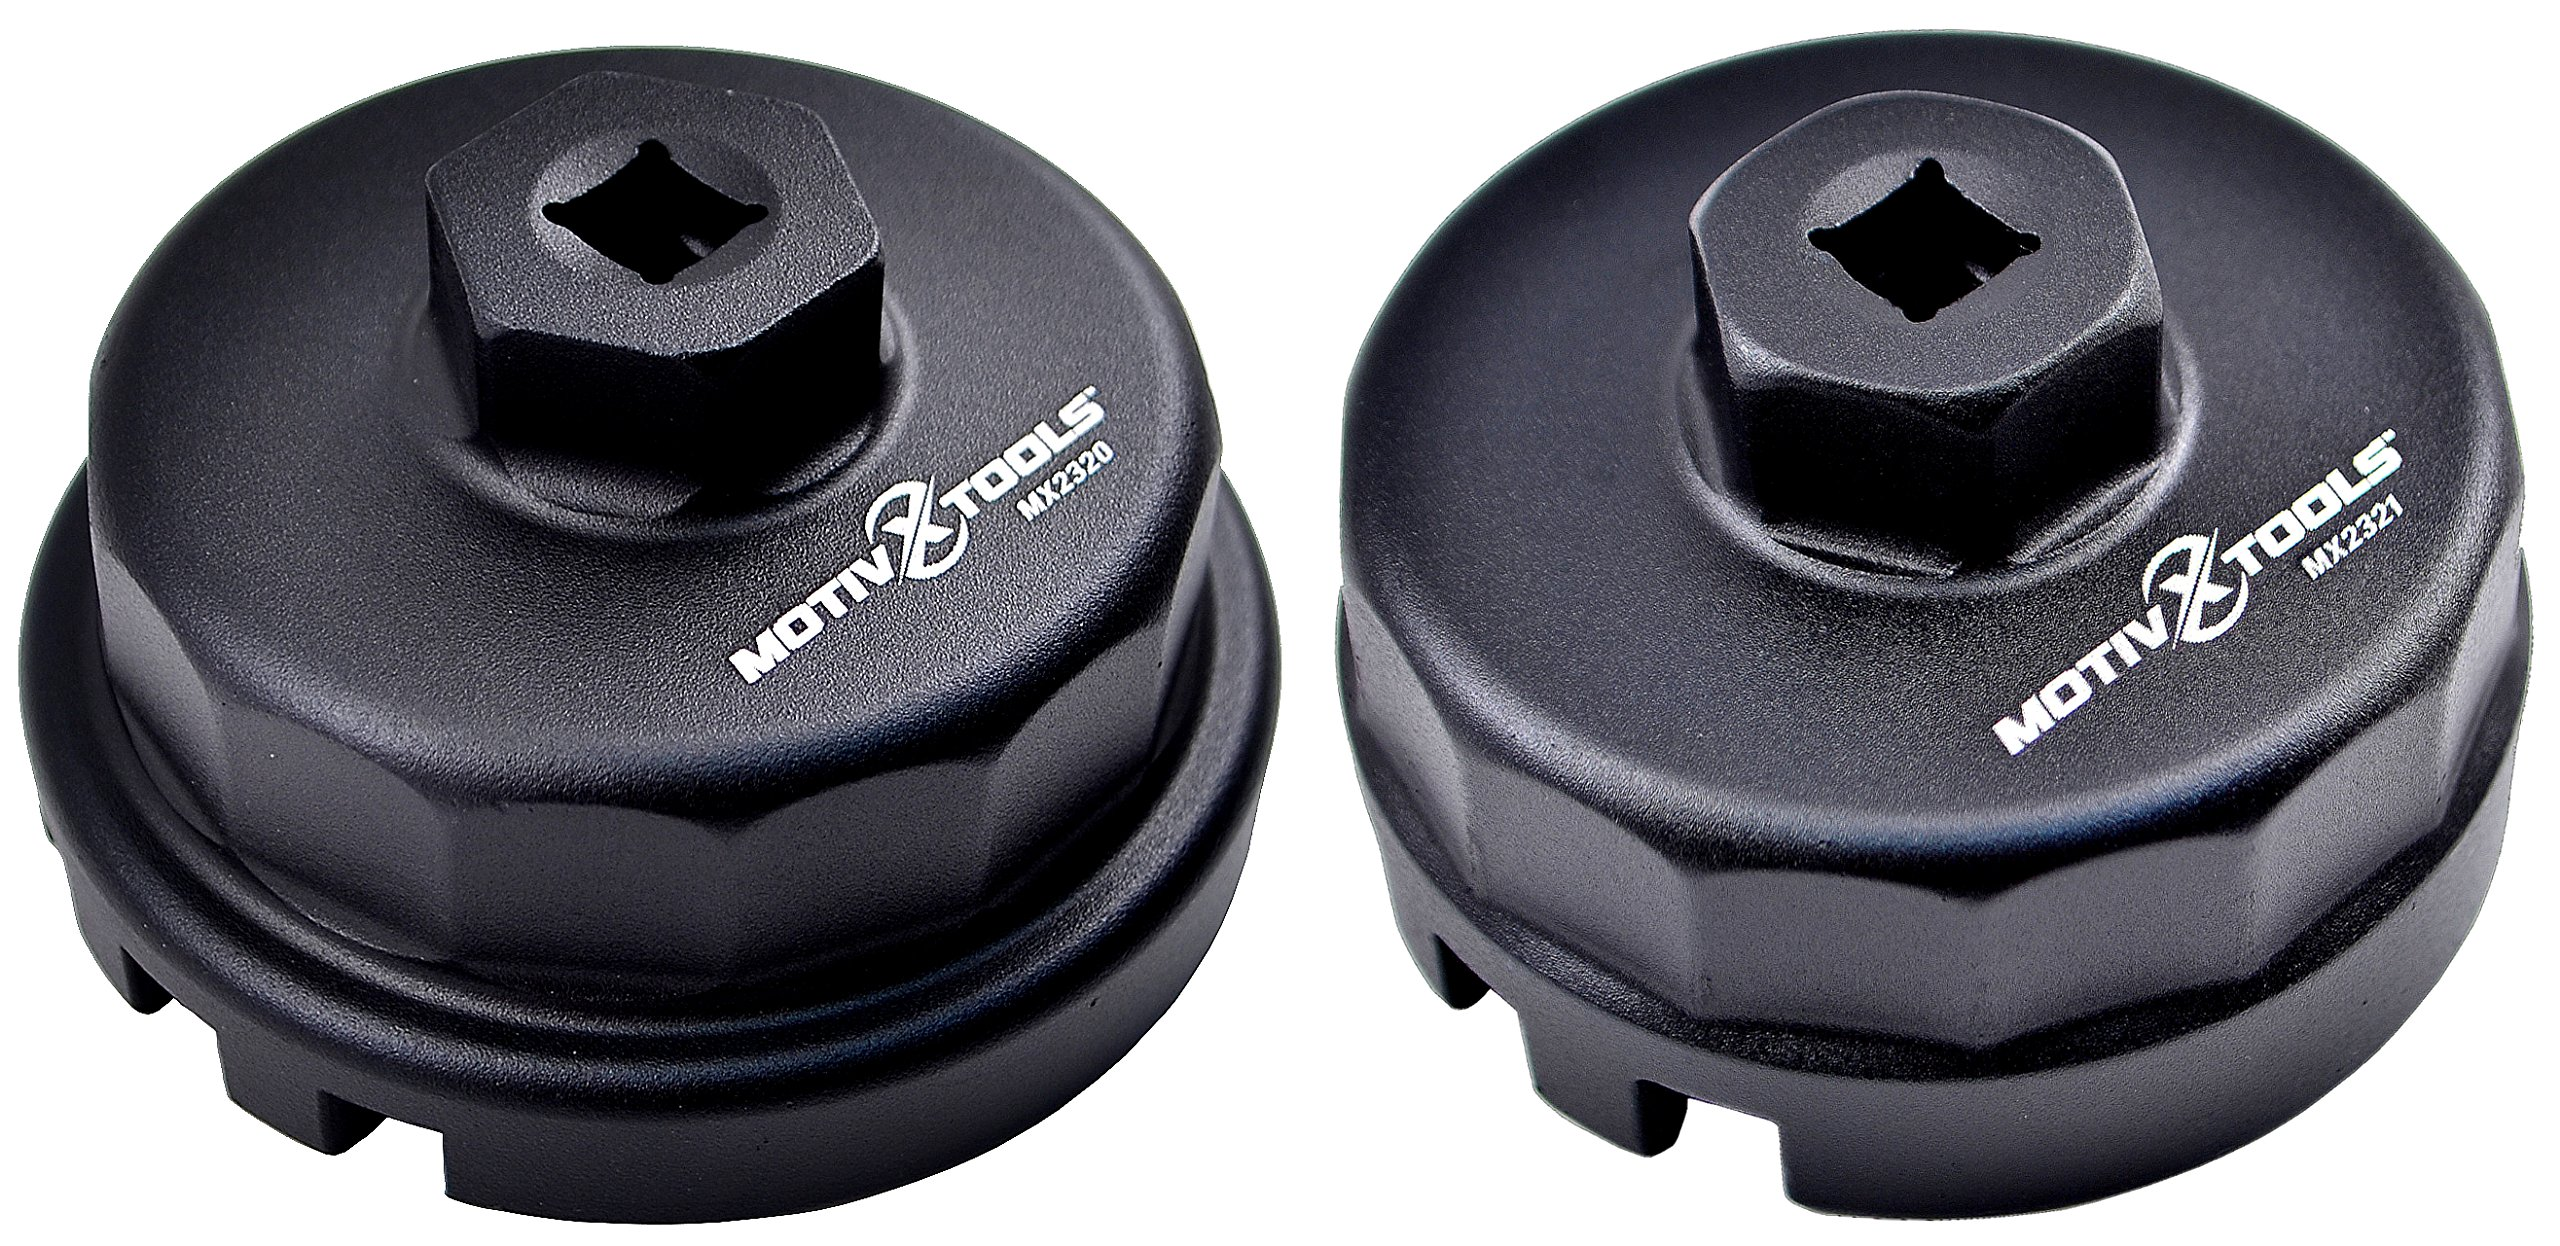 Motivx Tools 2pc Oil Filter Wrench Set for Toyota & Lexus Vehicles - Includes Wrenches for 1.8L and 2.0L - 5.7L Engines